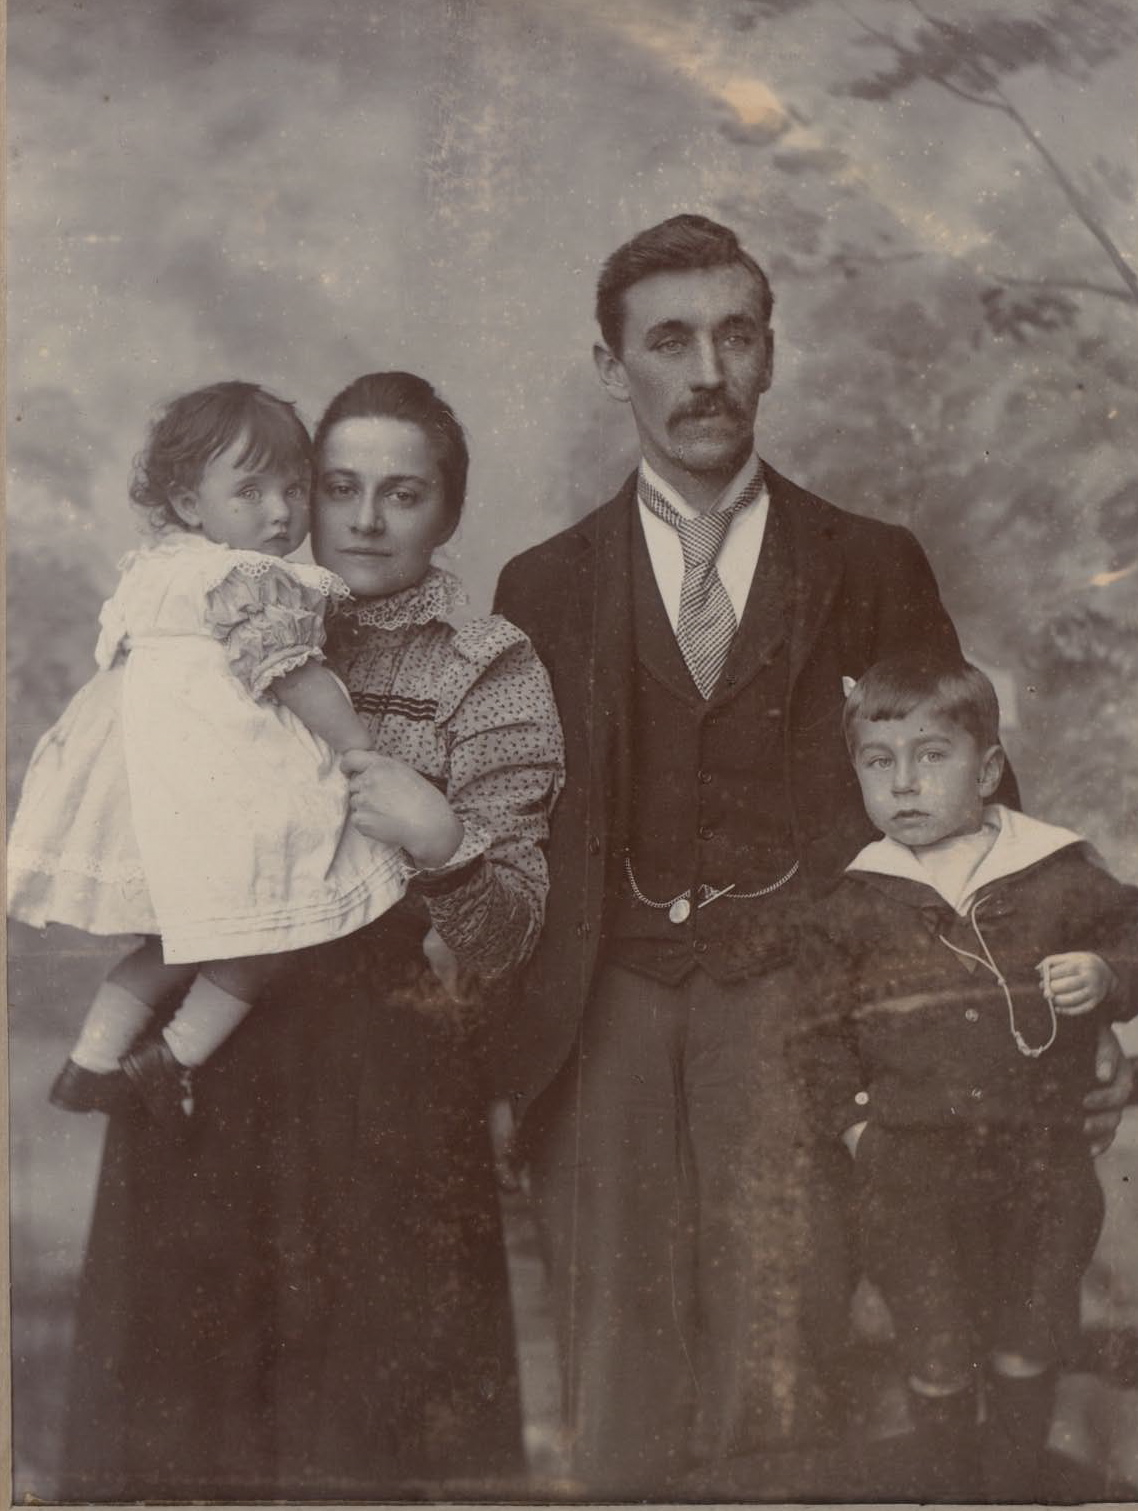 Dance Family ca 1900, from left: Ruth, Fanny, George William, George